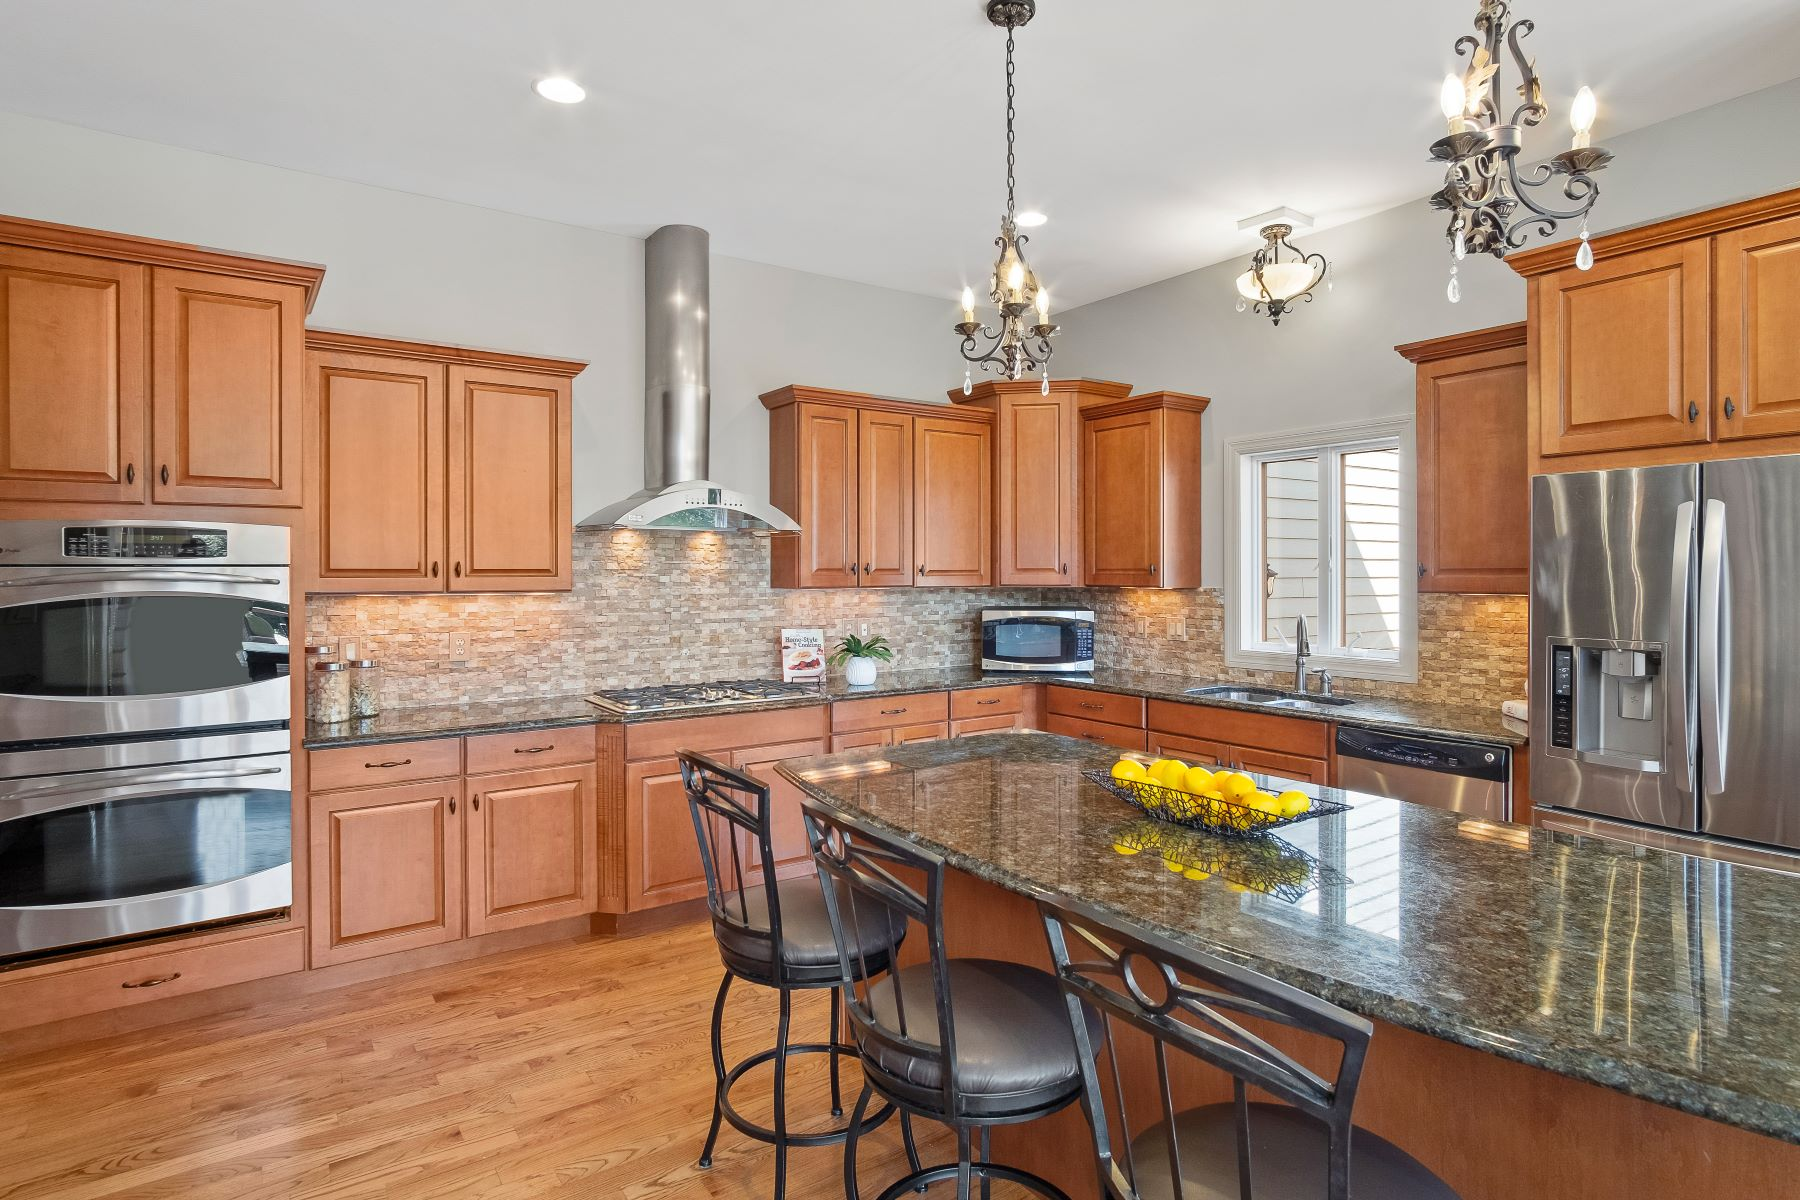 Additional photo for property listing at For the Discerning Chesterfield Buyer Looking for Lofty Amenities 16757 Eagle Bluff Court Chesterfield, Missouri 63005 United States